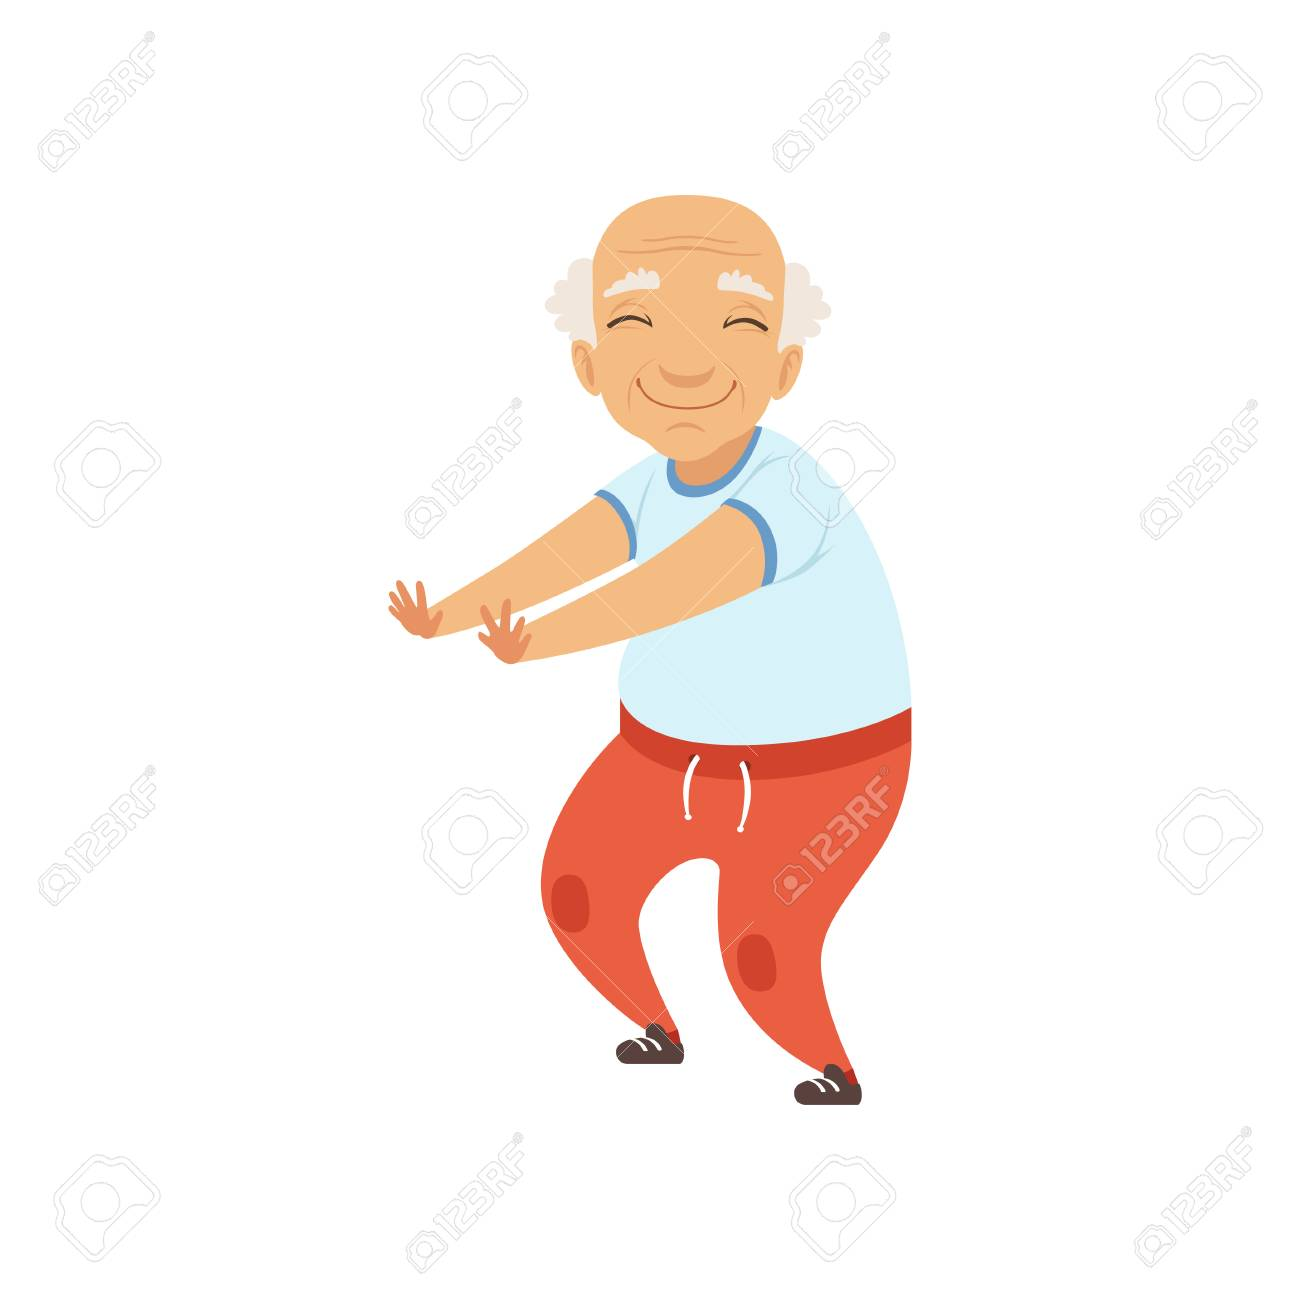 Senior man in sports uniform doing squats, grandmother character doing morning exercises or therapeutic gymnastics, active and healthy lifestyle vector Illustration on a white background - 102107717